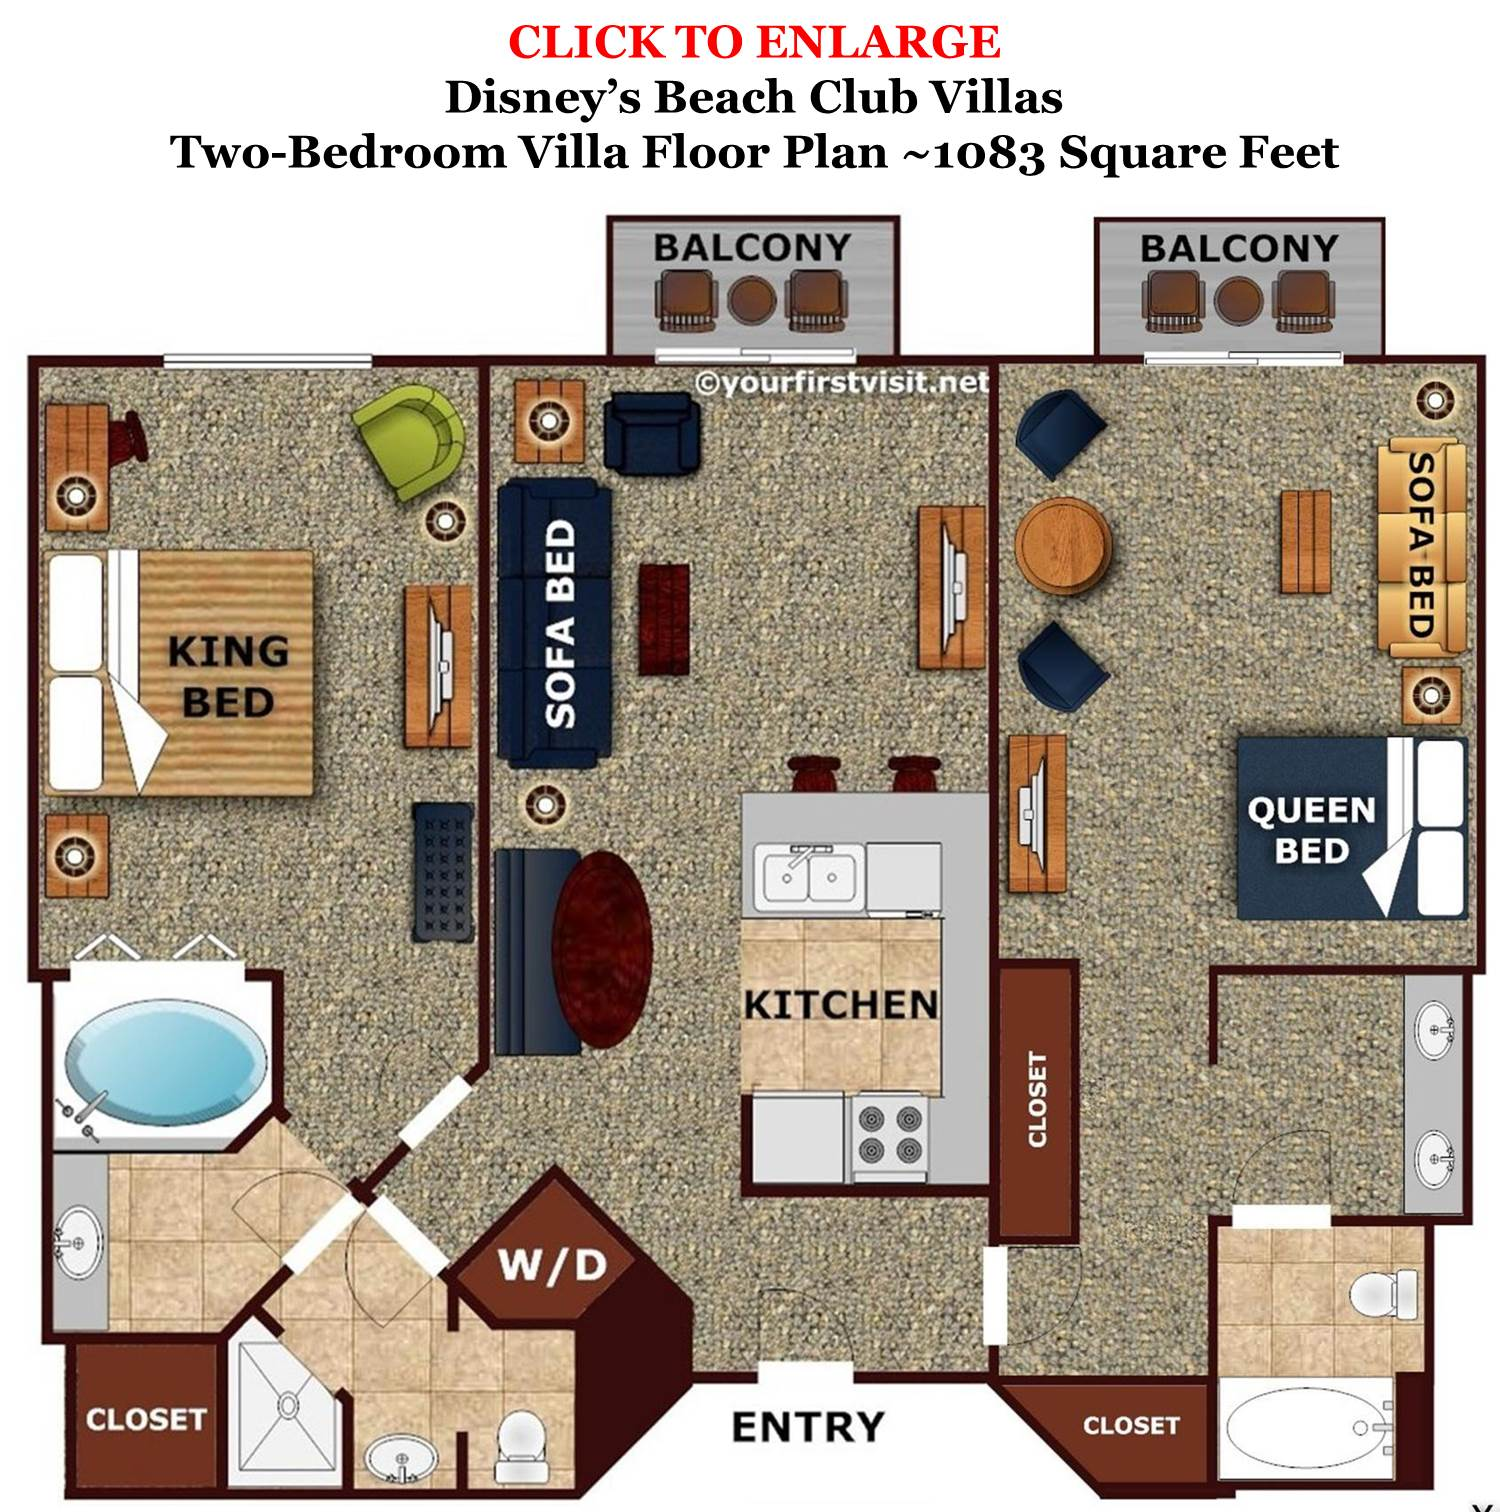 Ph Towers 2 Bedroom Suite Twin Towers Floor Plans Images Plans Live Life Queen Size Besides